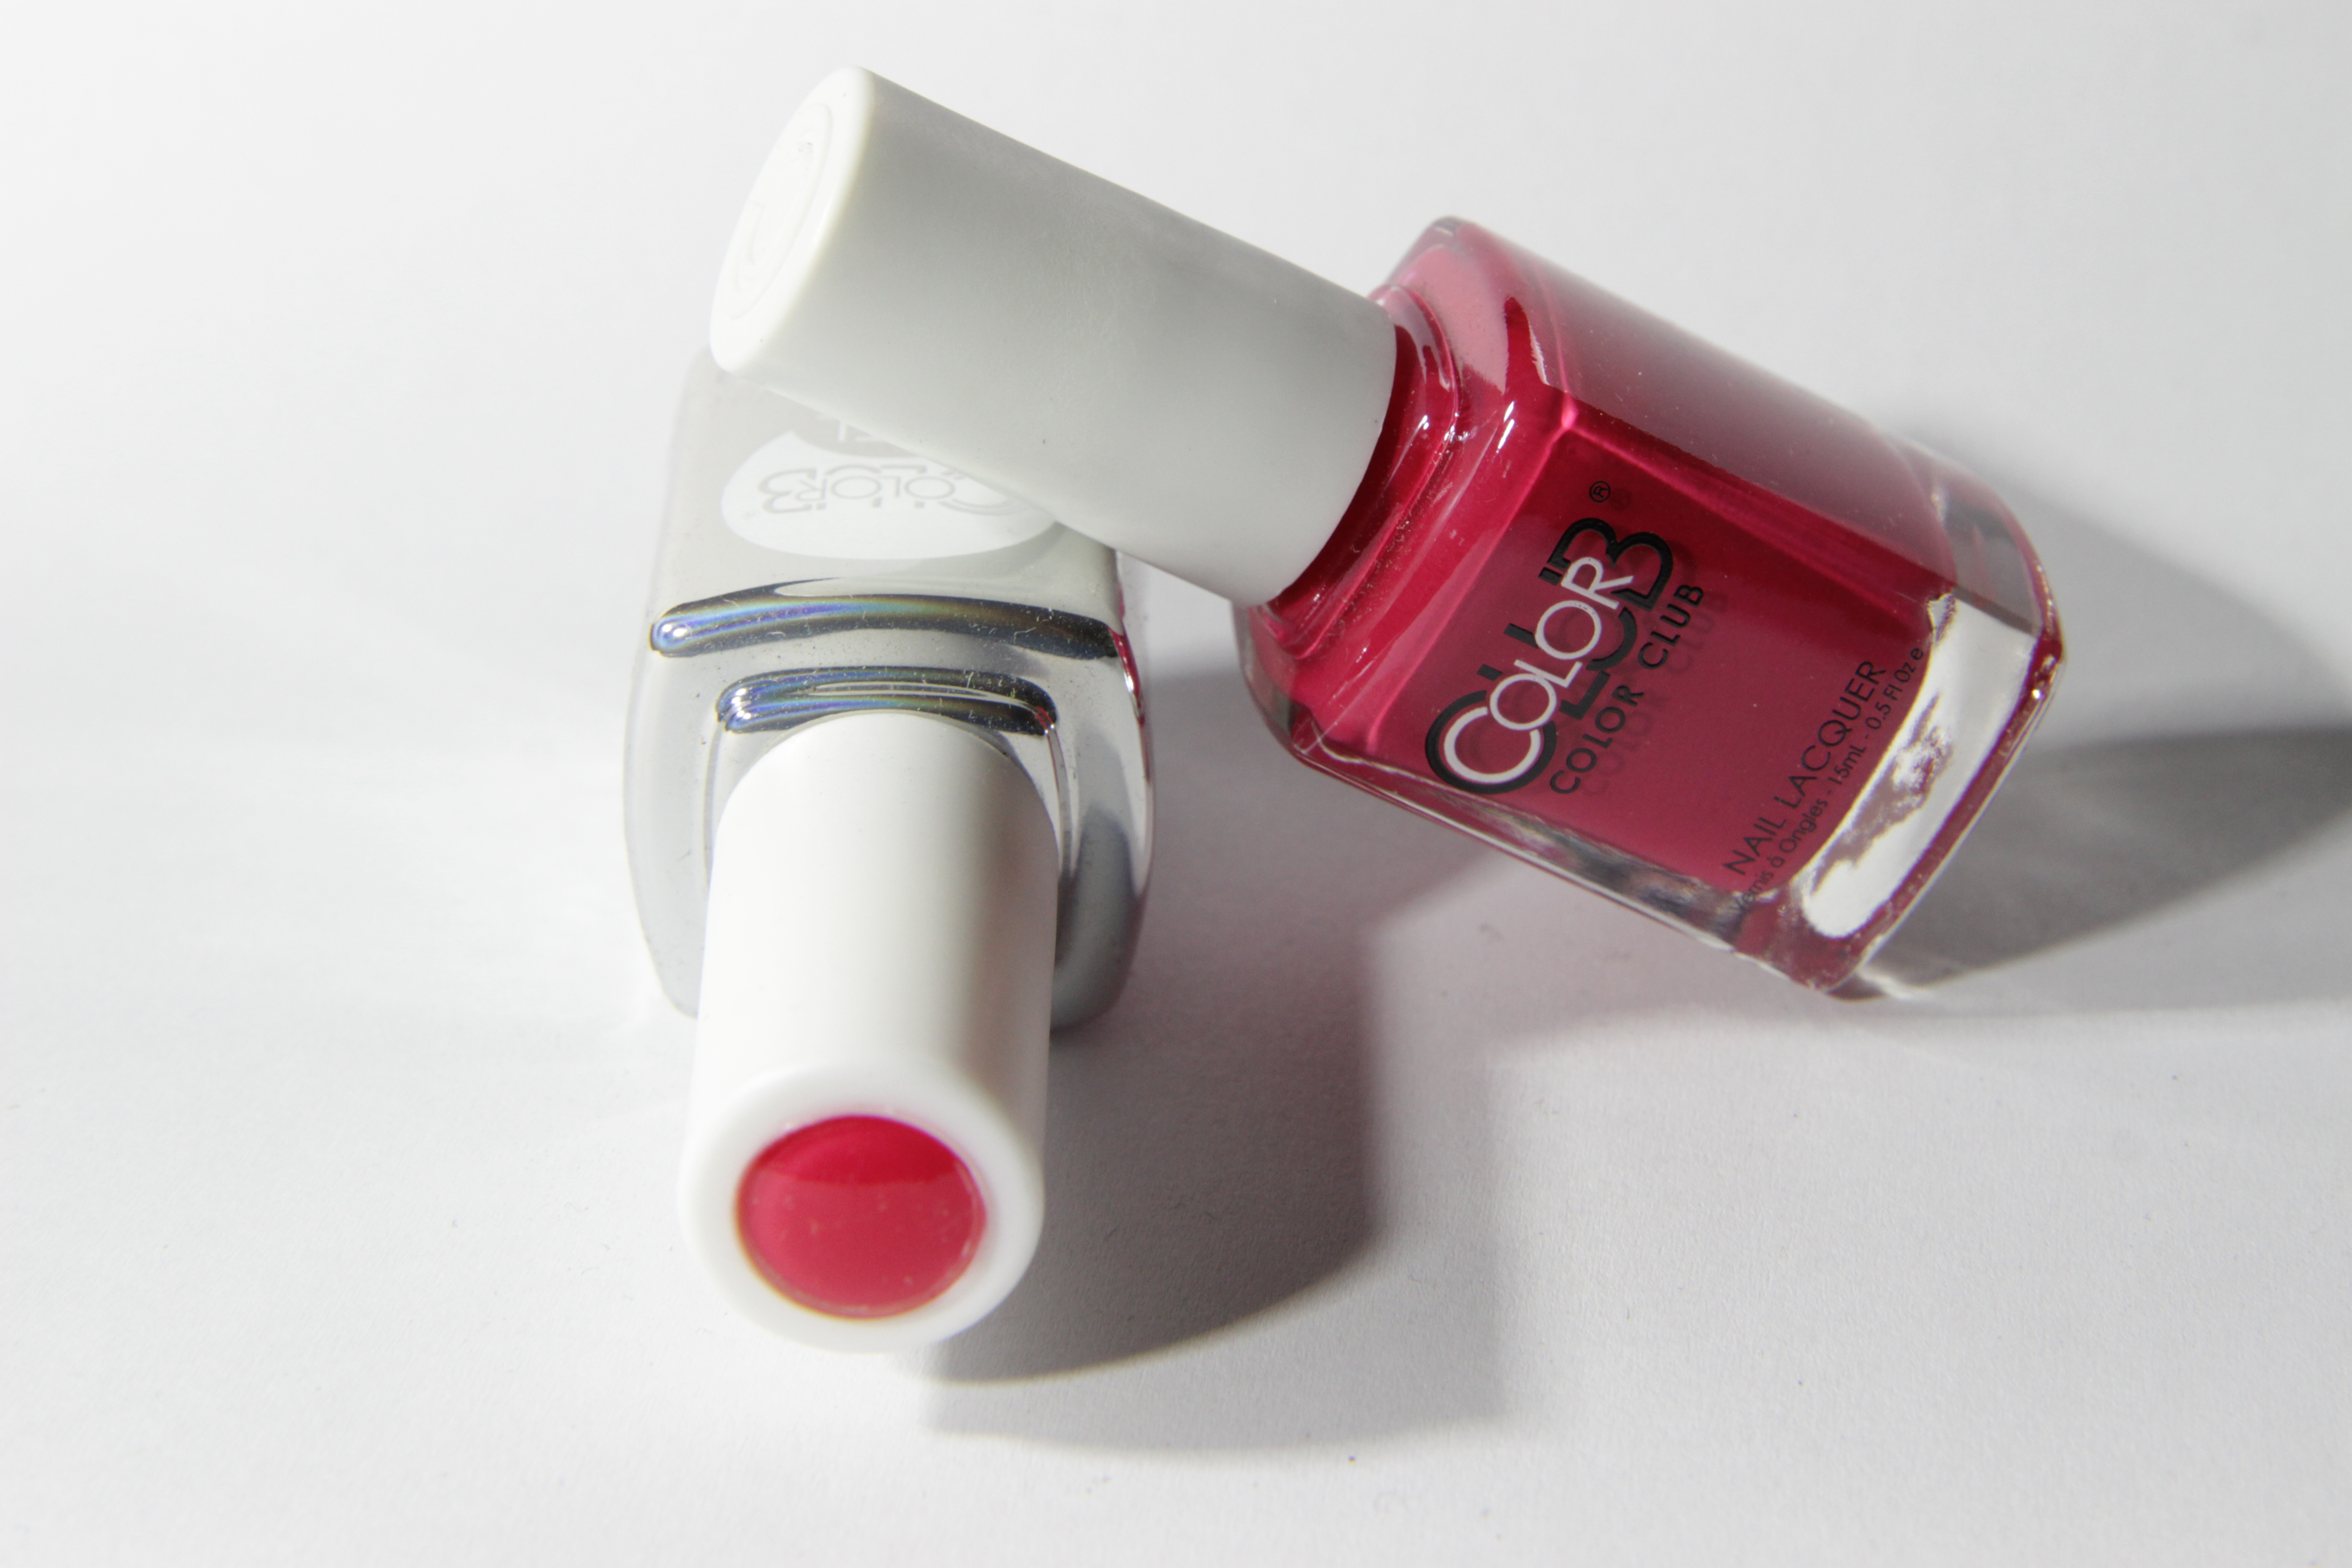 #0225 WATERMELON CANDY PINK Color Club Duo Nagellack Nail Lacquer and Soak-Off Gel Polish rot red